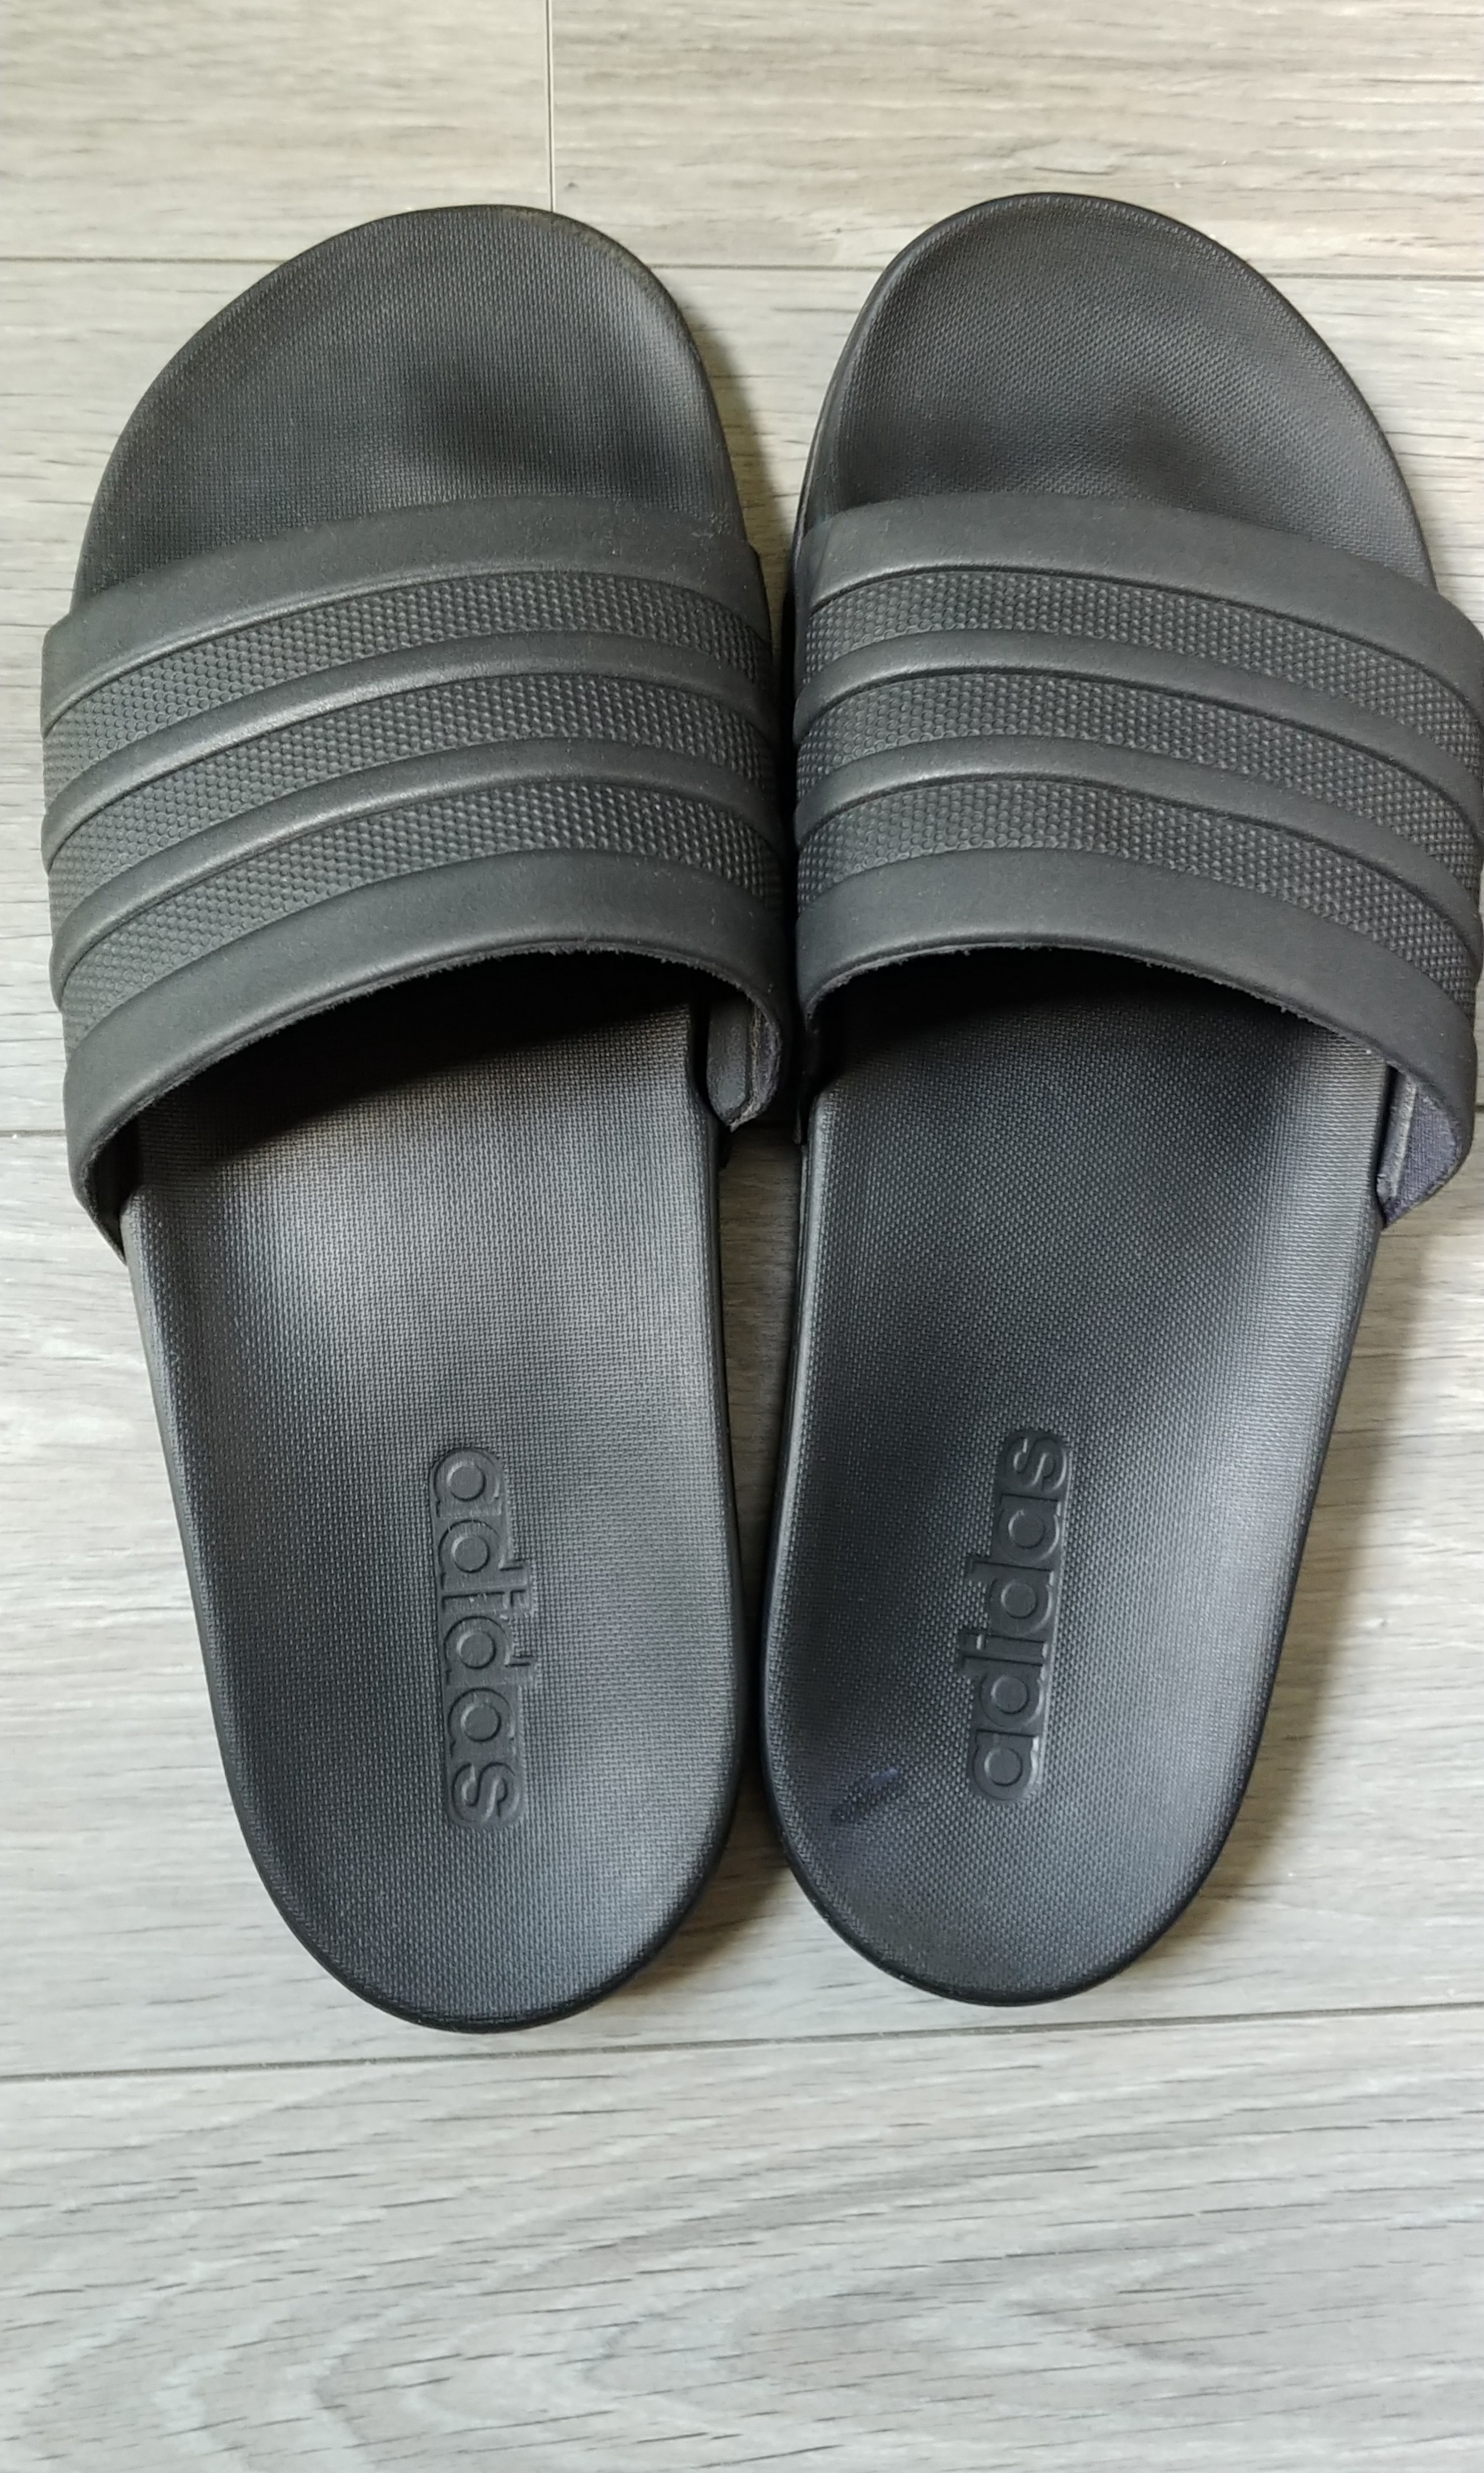 c8815421eaf6 factory price adidas adilette cloudfoam plus mono slides grey adidas ...